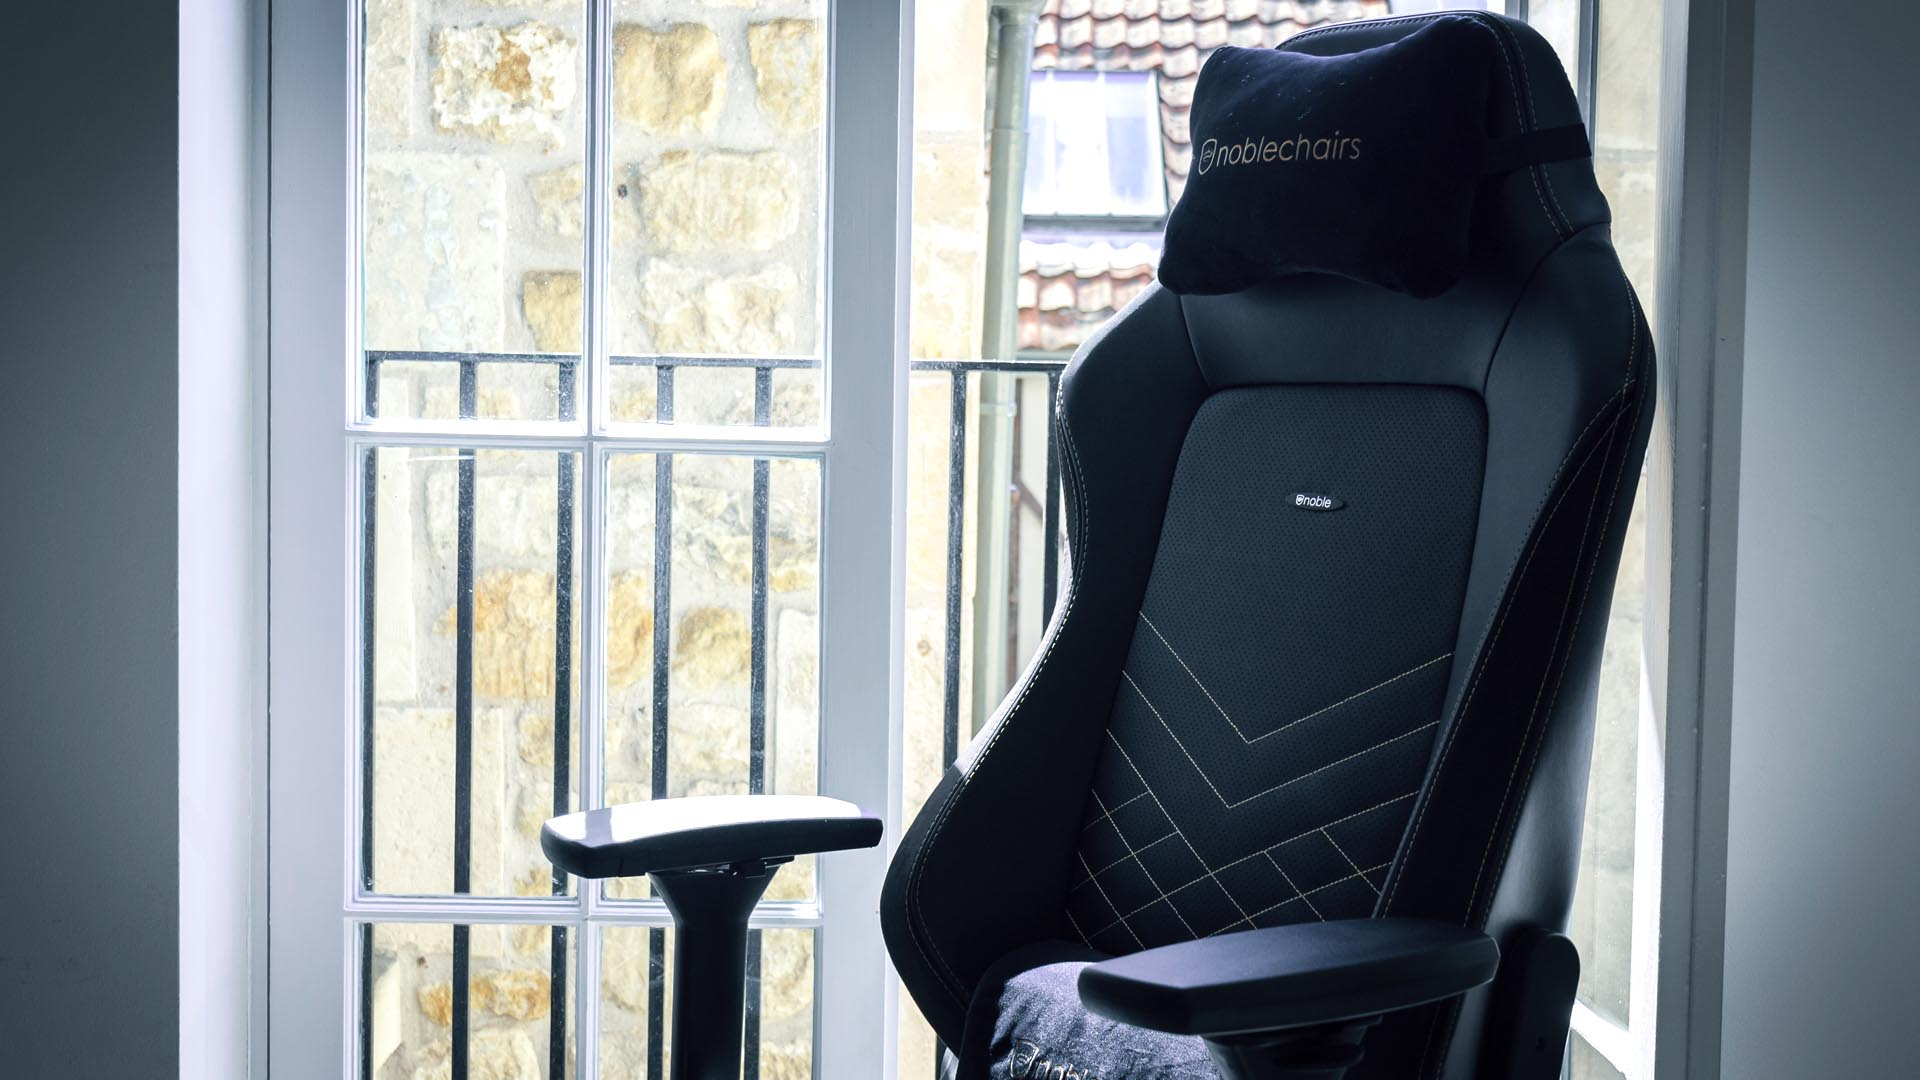 Superb Noblechairs Pc News Pcgamesn Squirreltailoven Fun Painted Chair Ideas Images Squirreltailovenorg